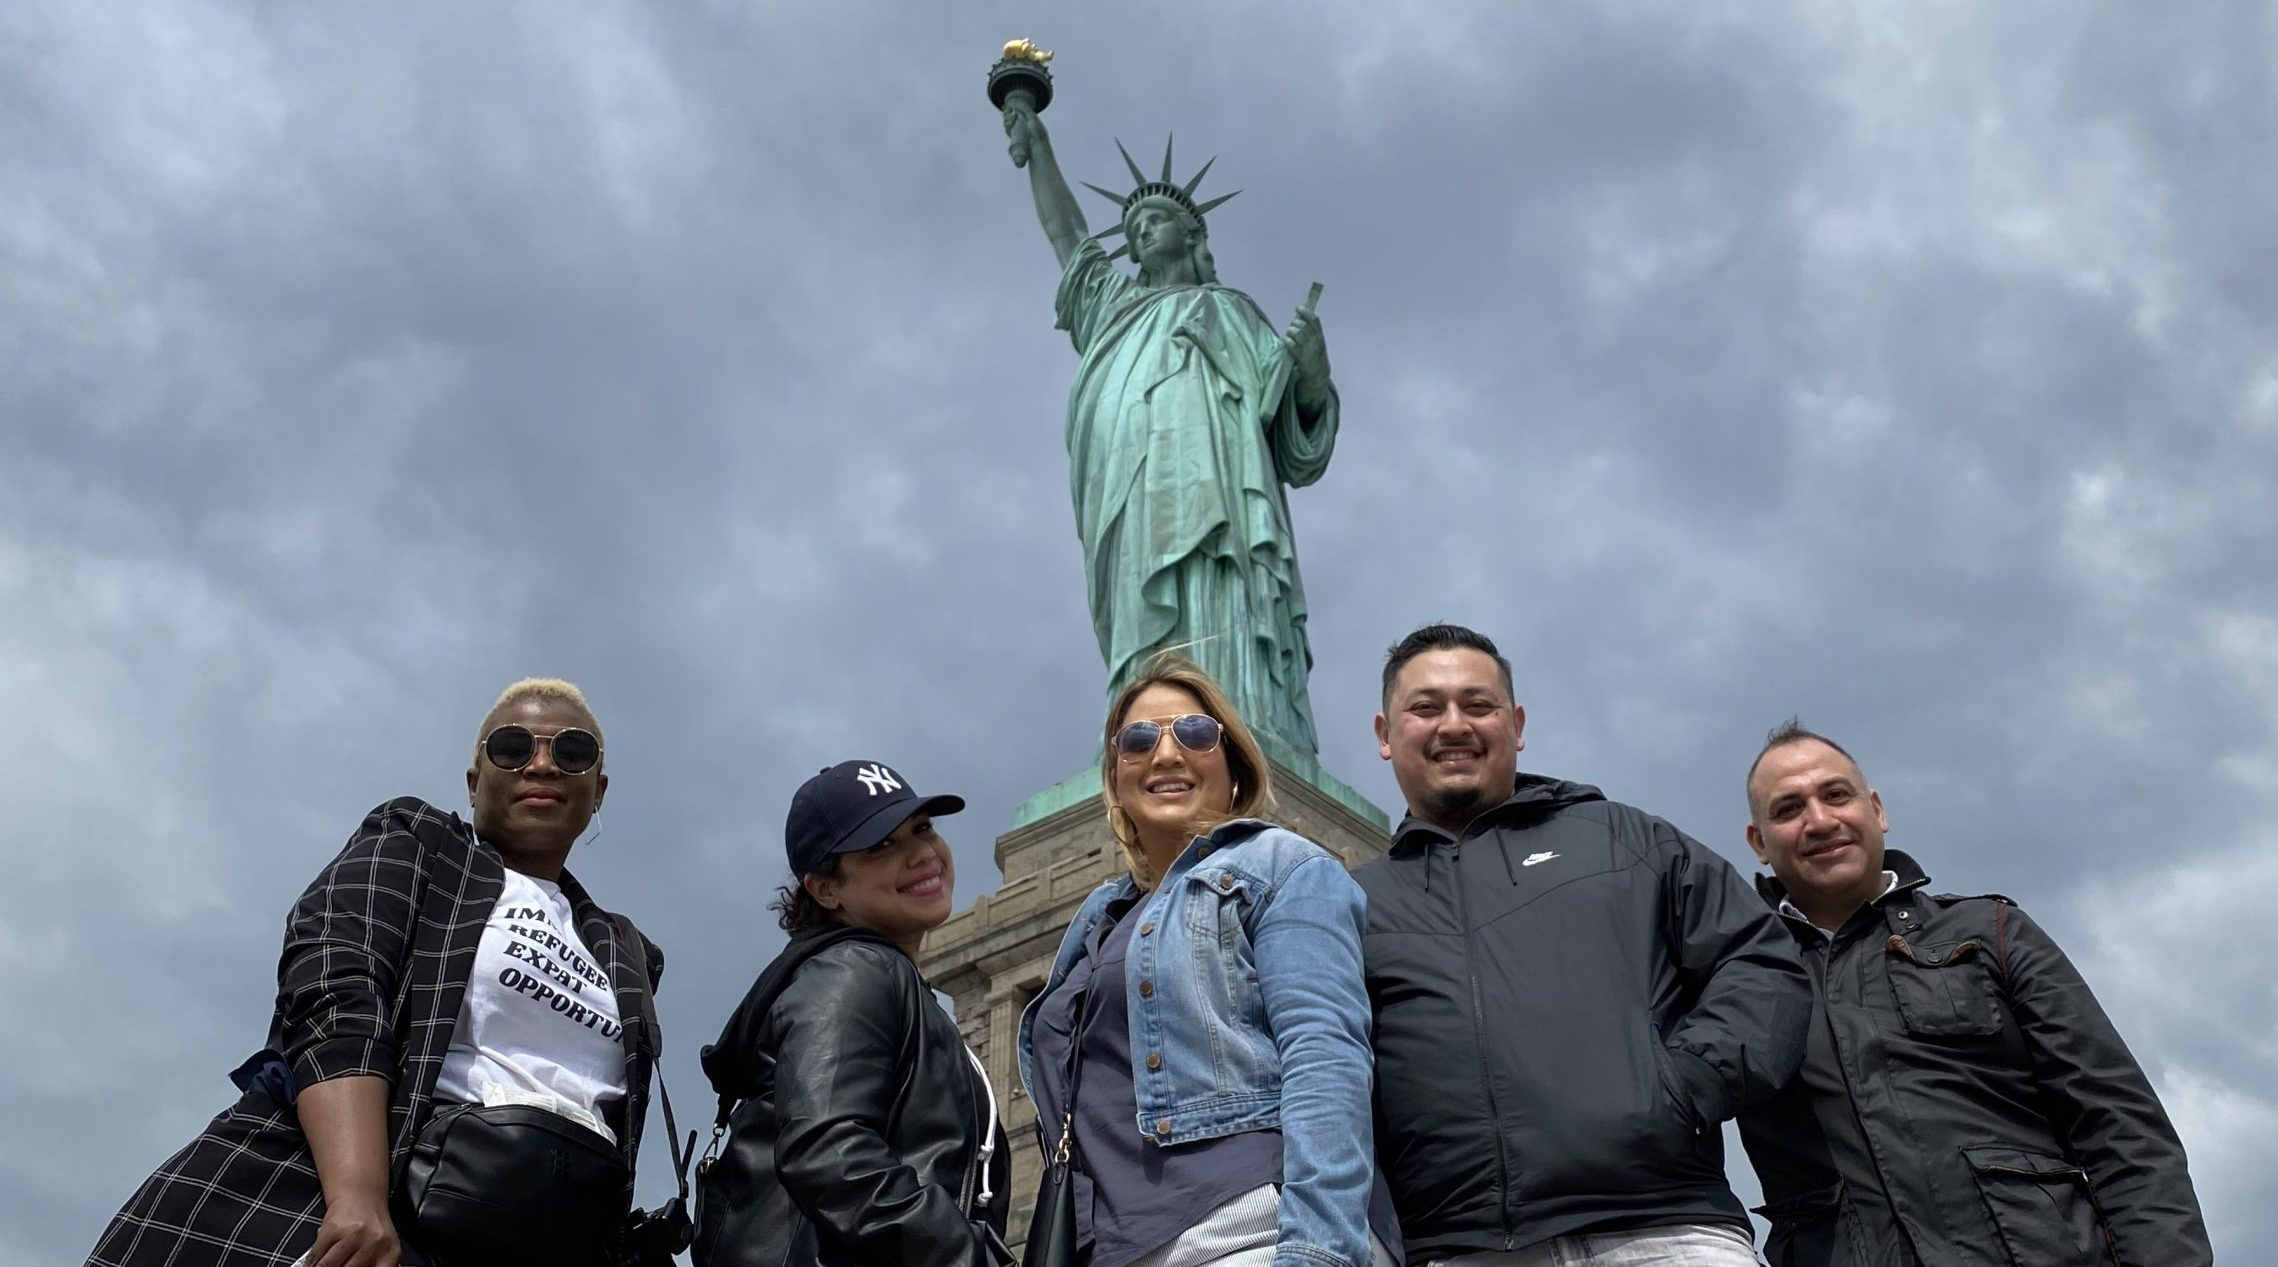 Group photo in front of the statue